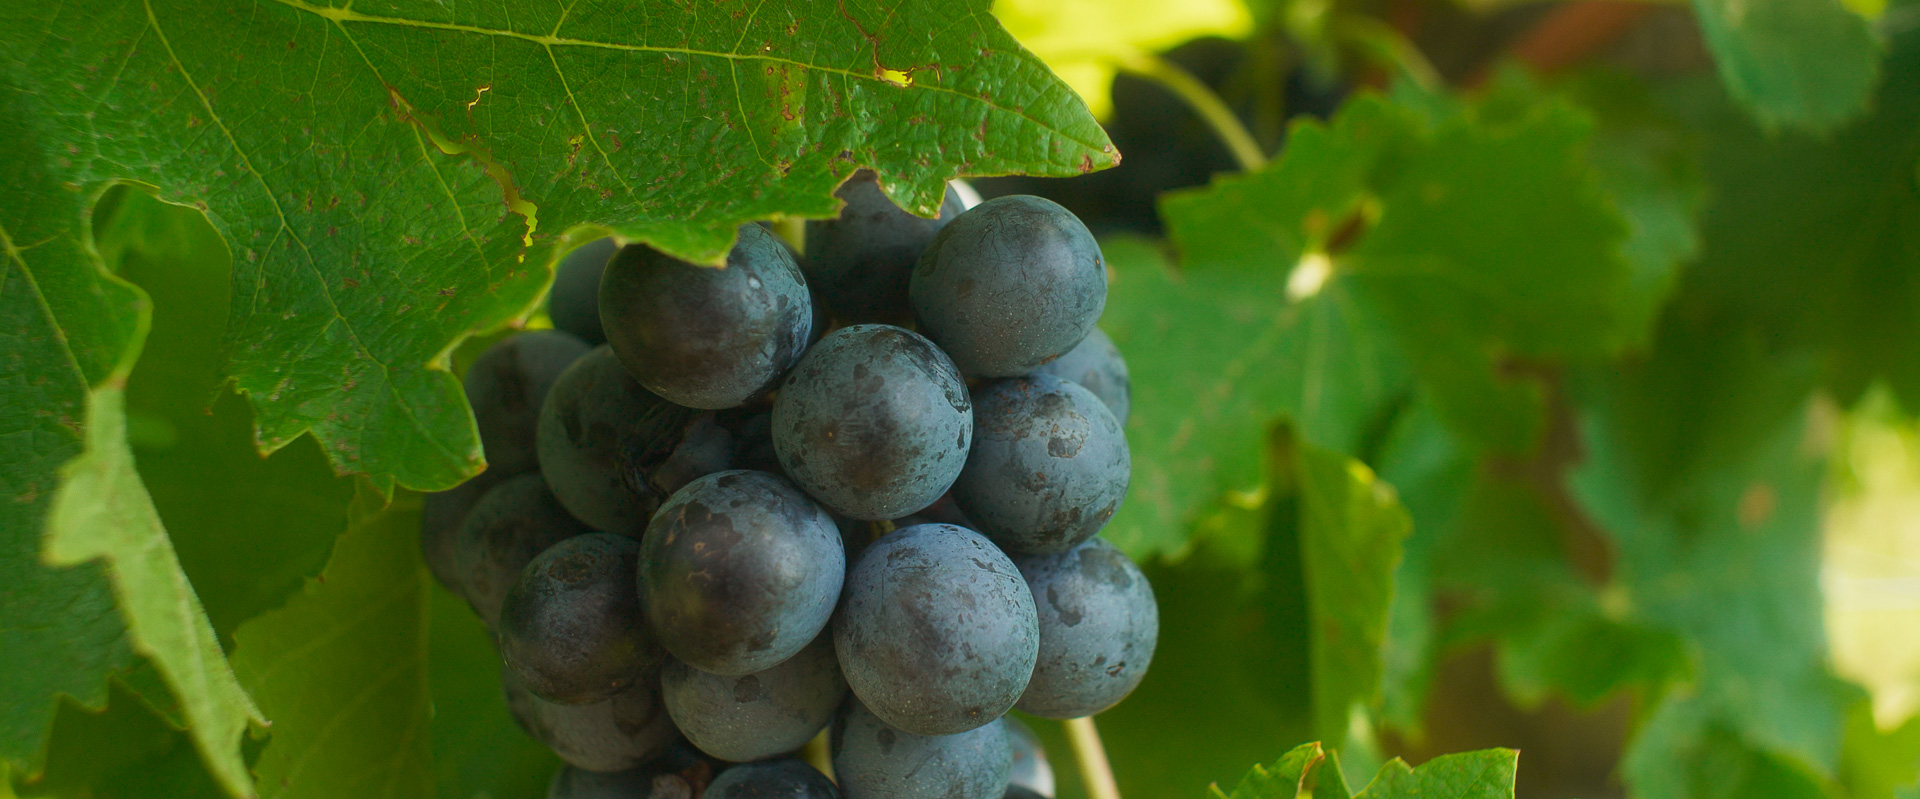 Botticino grapes